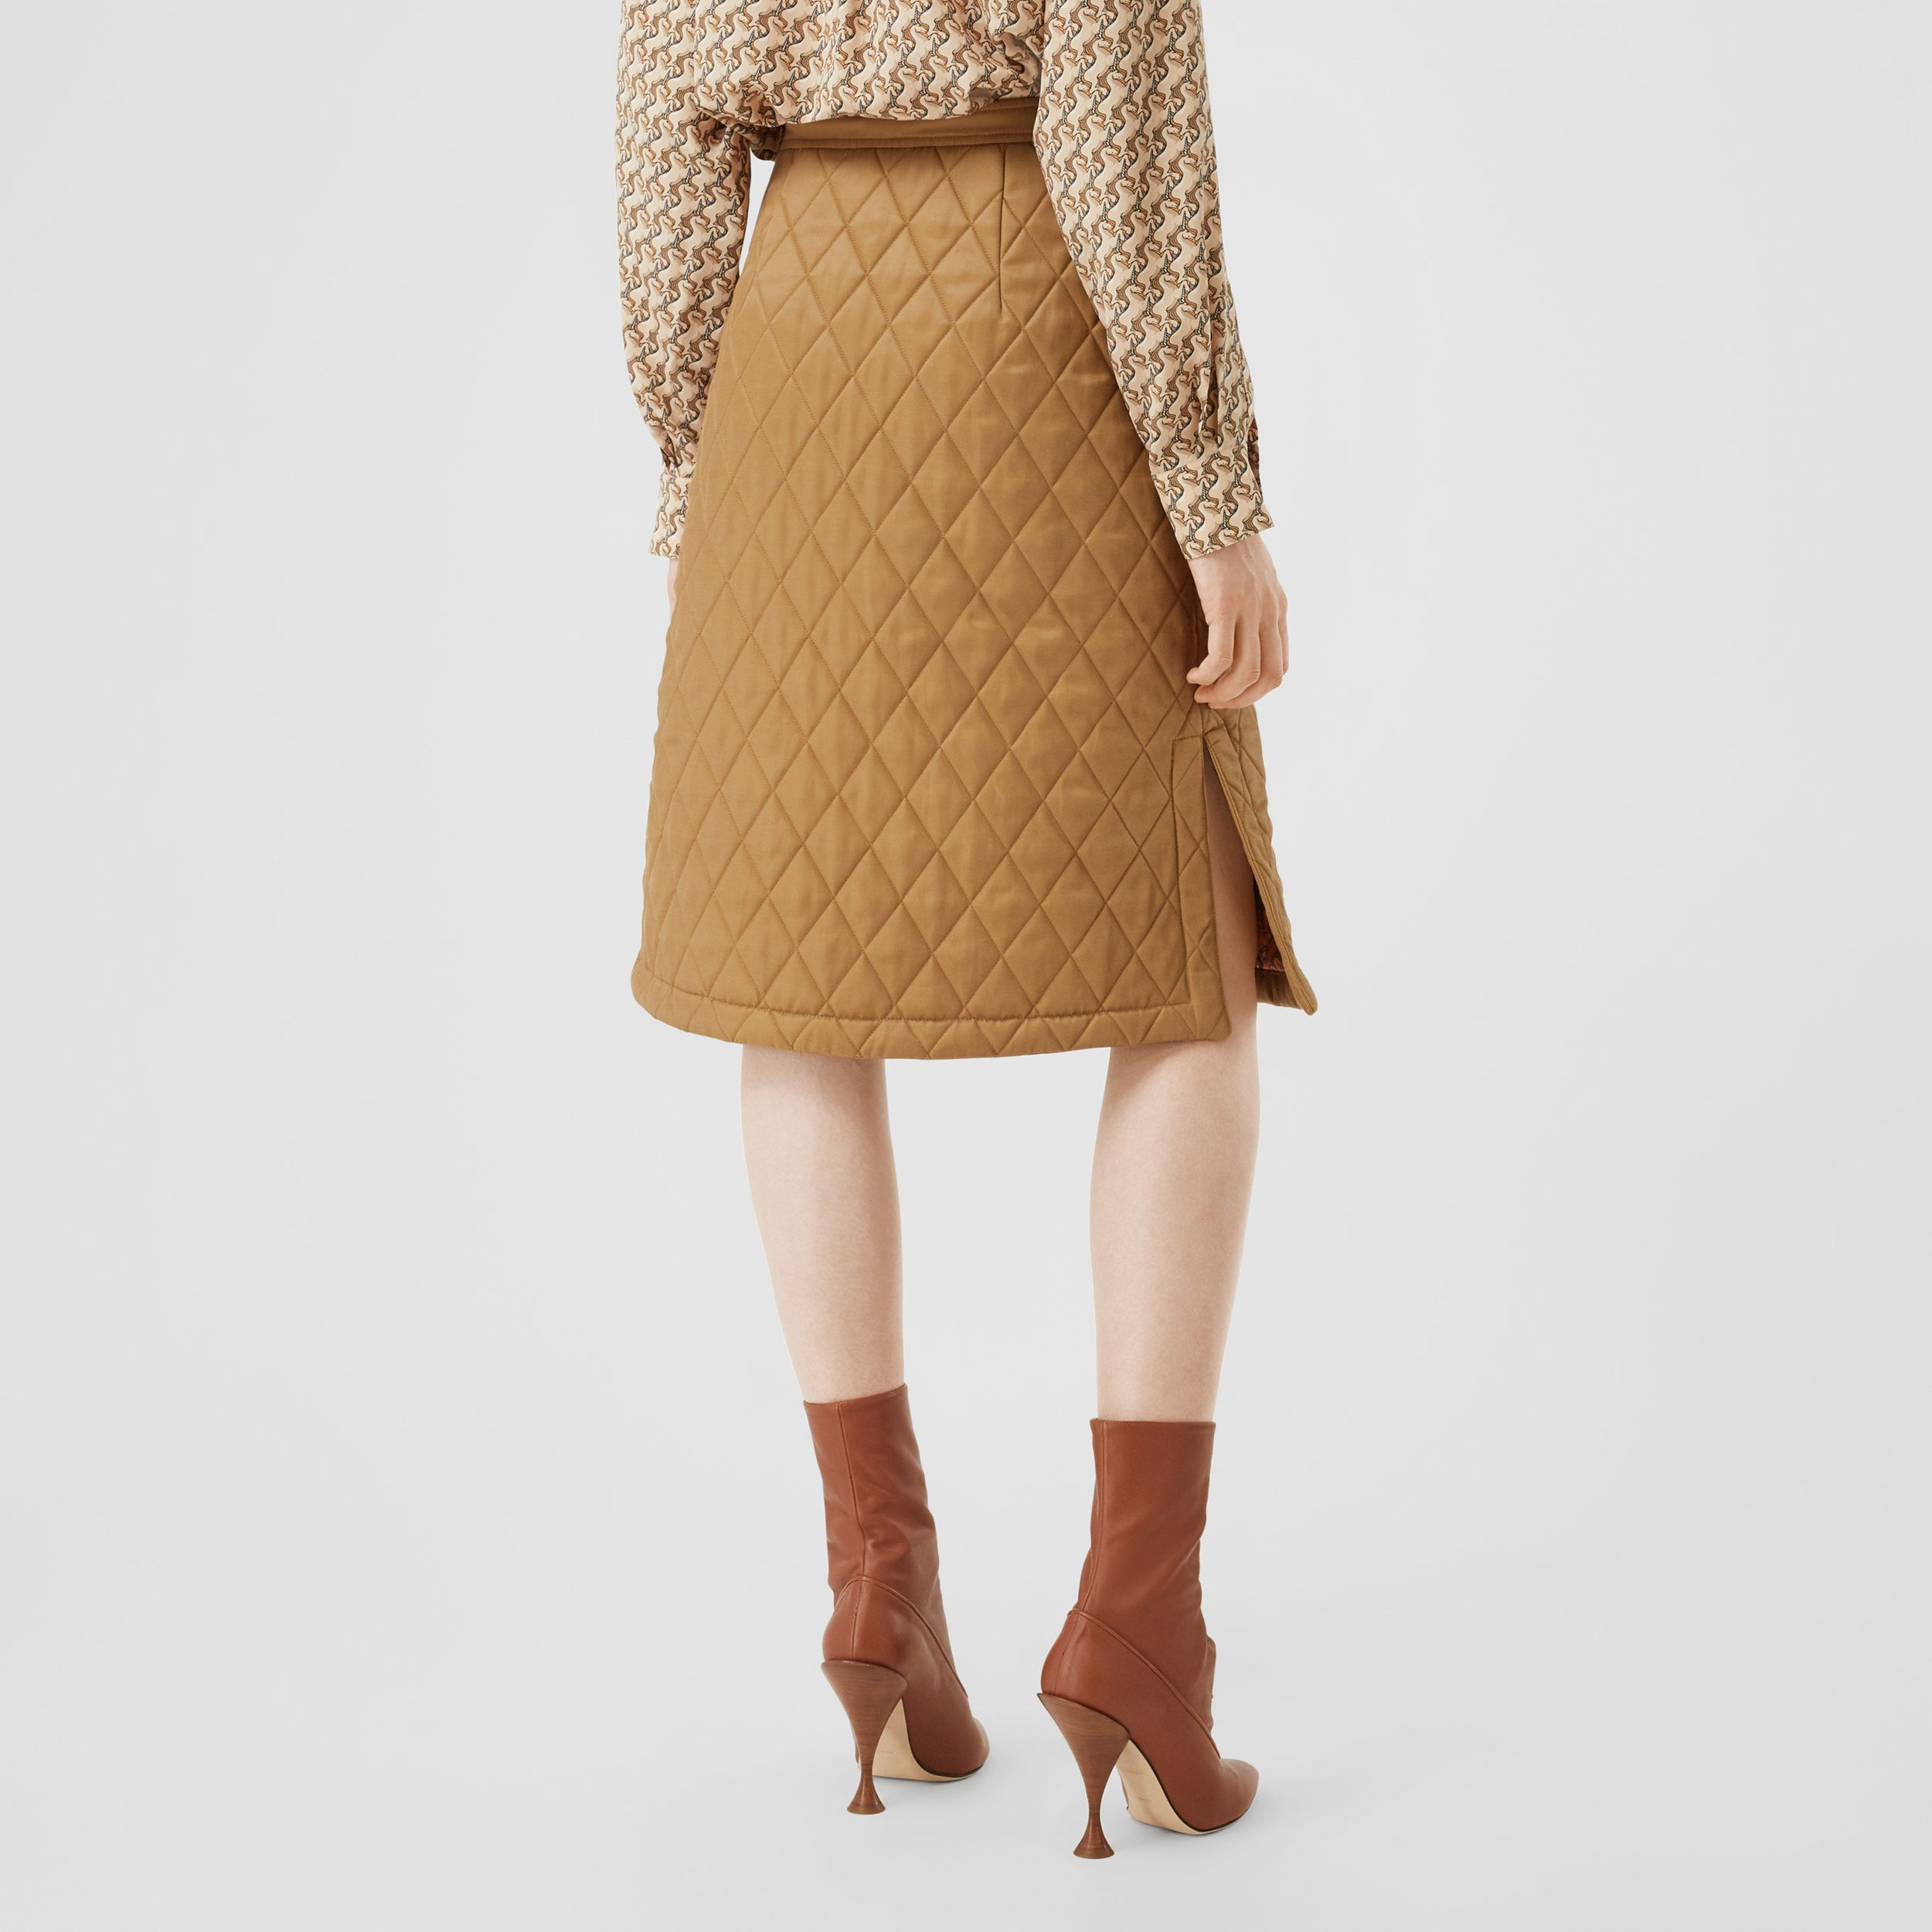 Diamond Quilted Twill A-line Skirt in Camel - Women | Burberry - 3